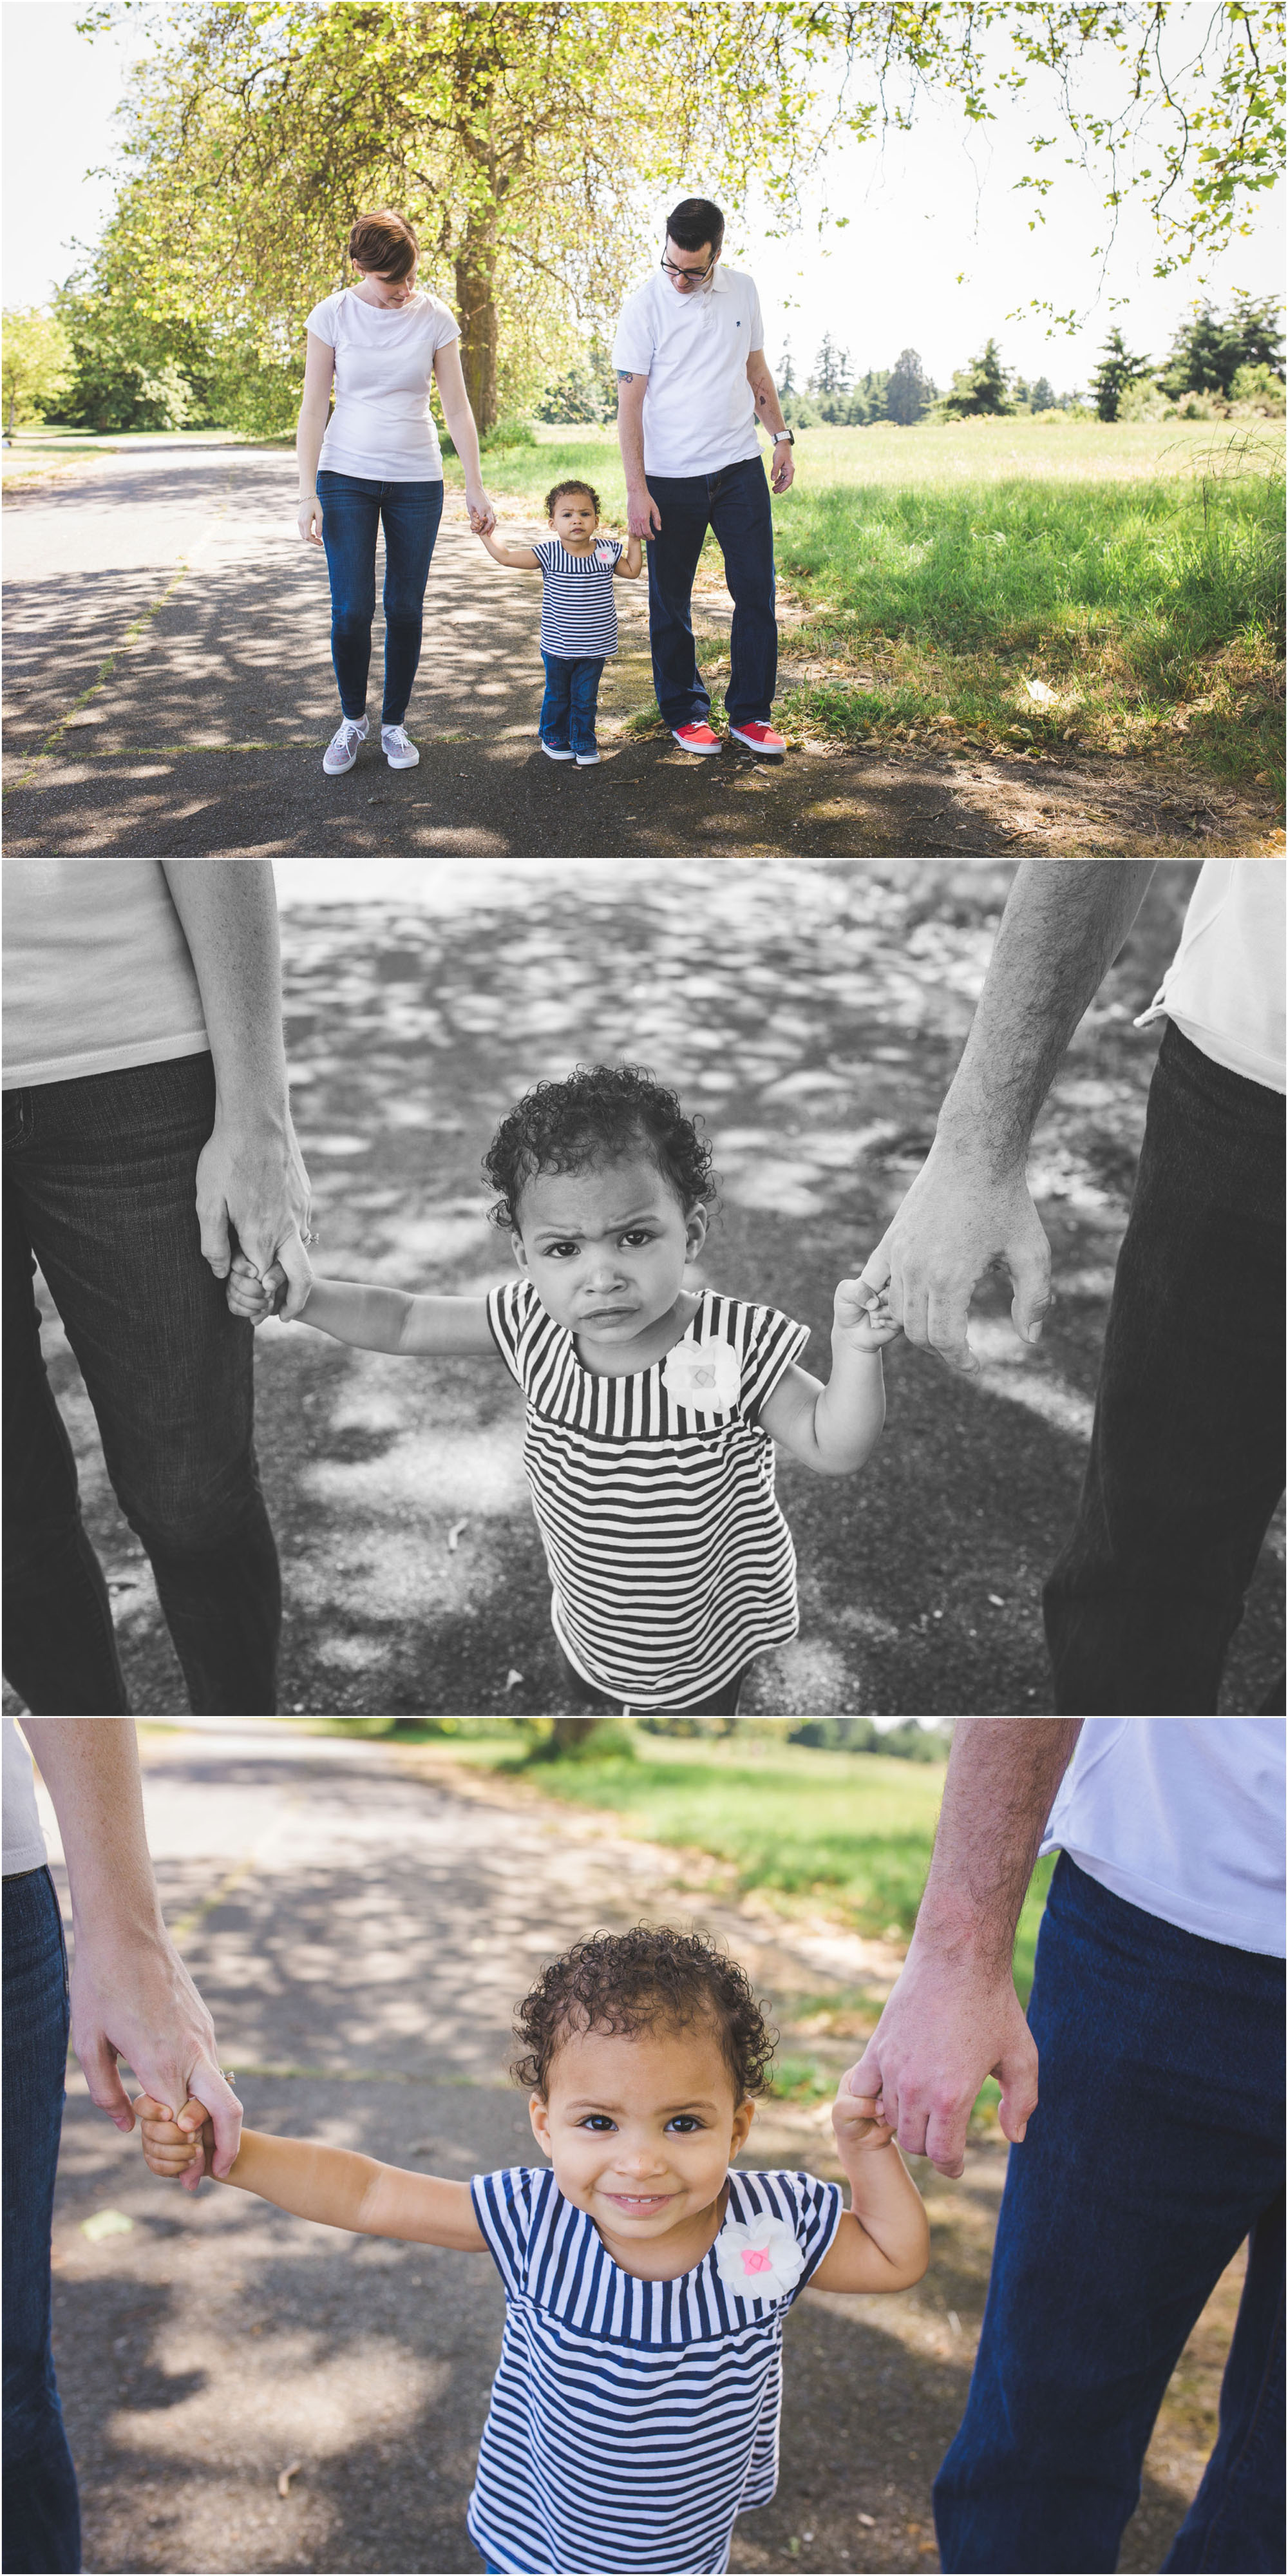 ashley vos photography seattle lifestyle family children toddler photography_0155.jpg